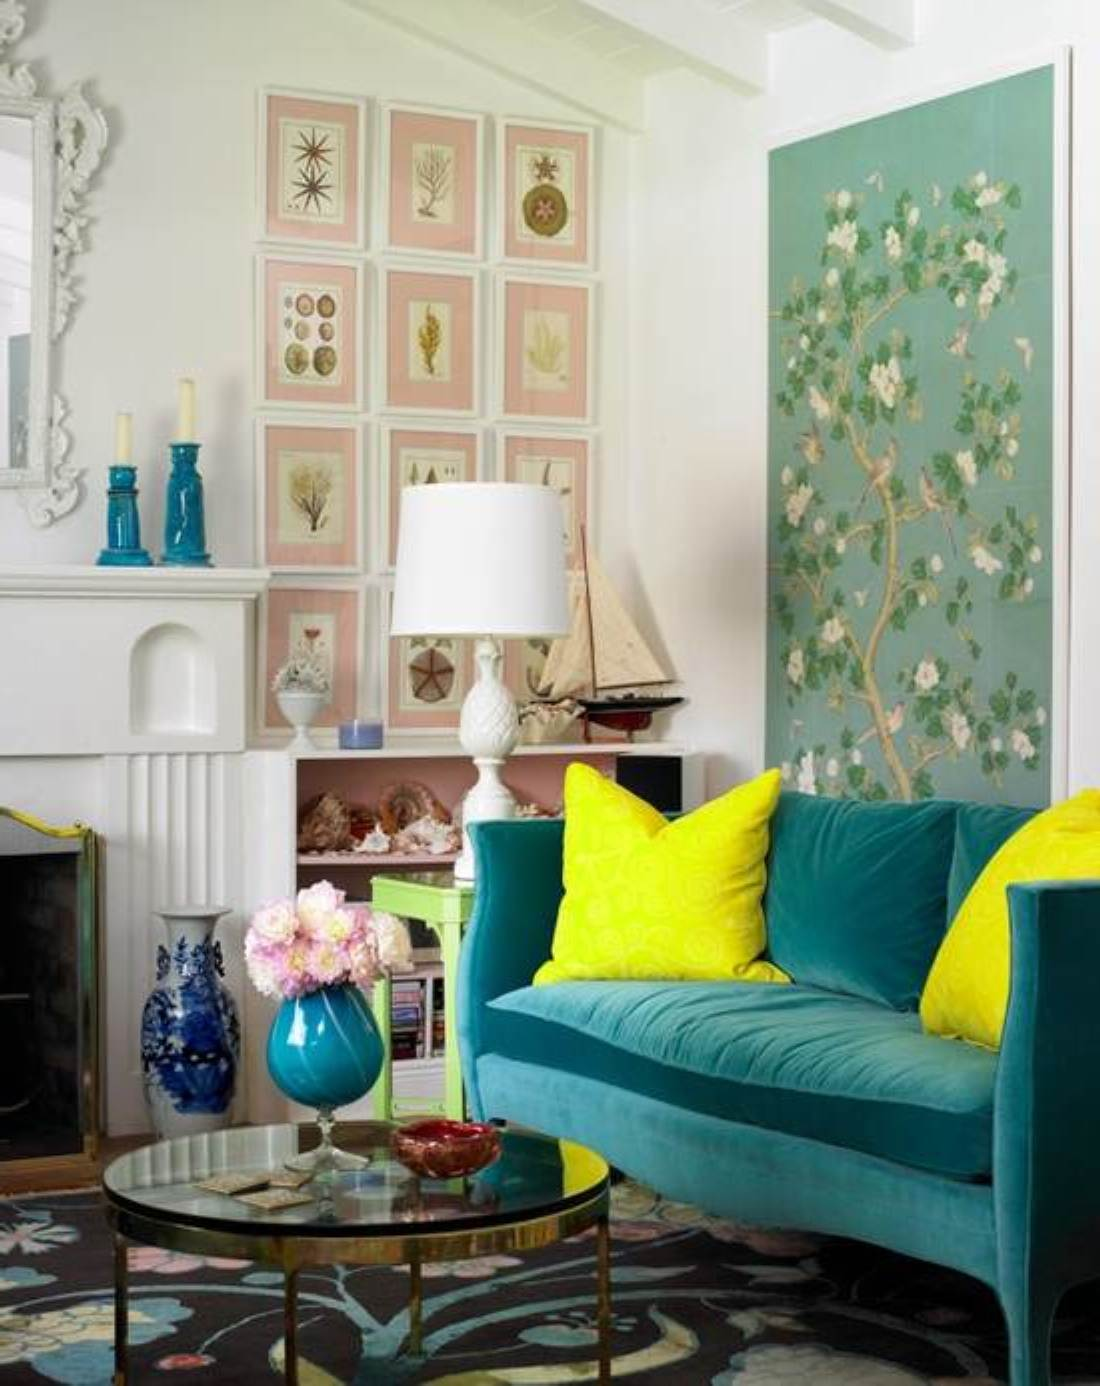 Some easy rules of small space decorating live diy ideas for Living room decor ideas for small spaces